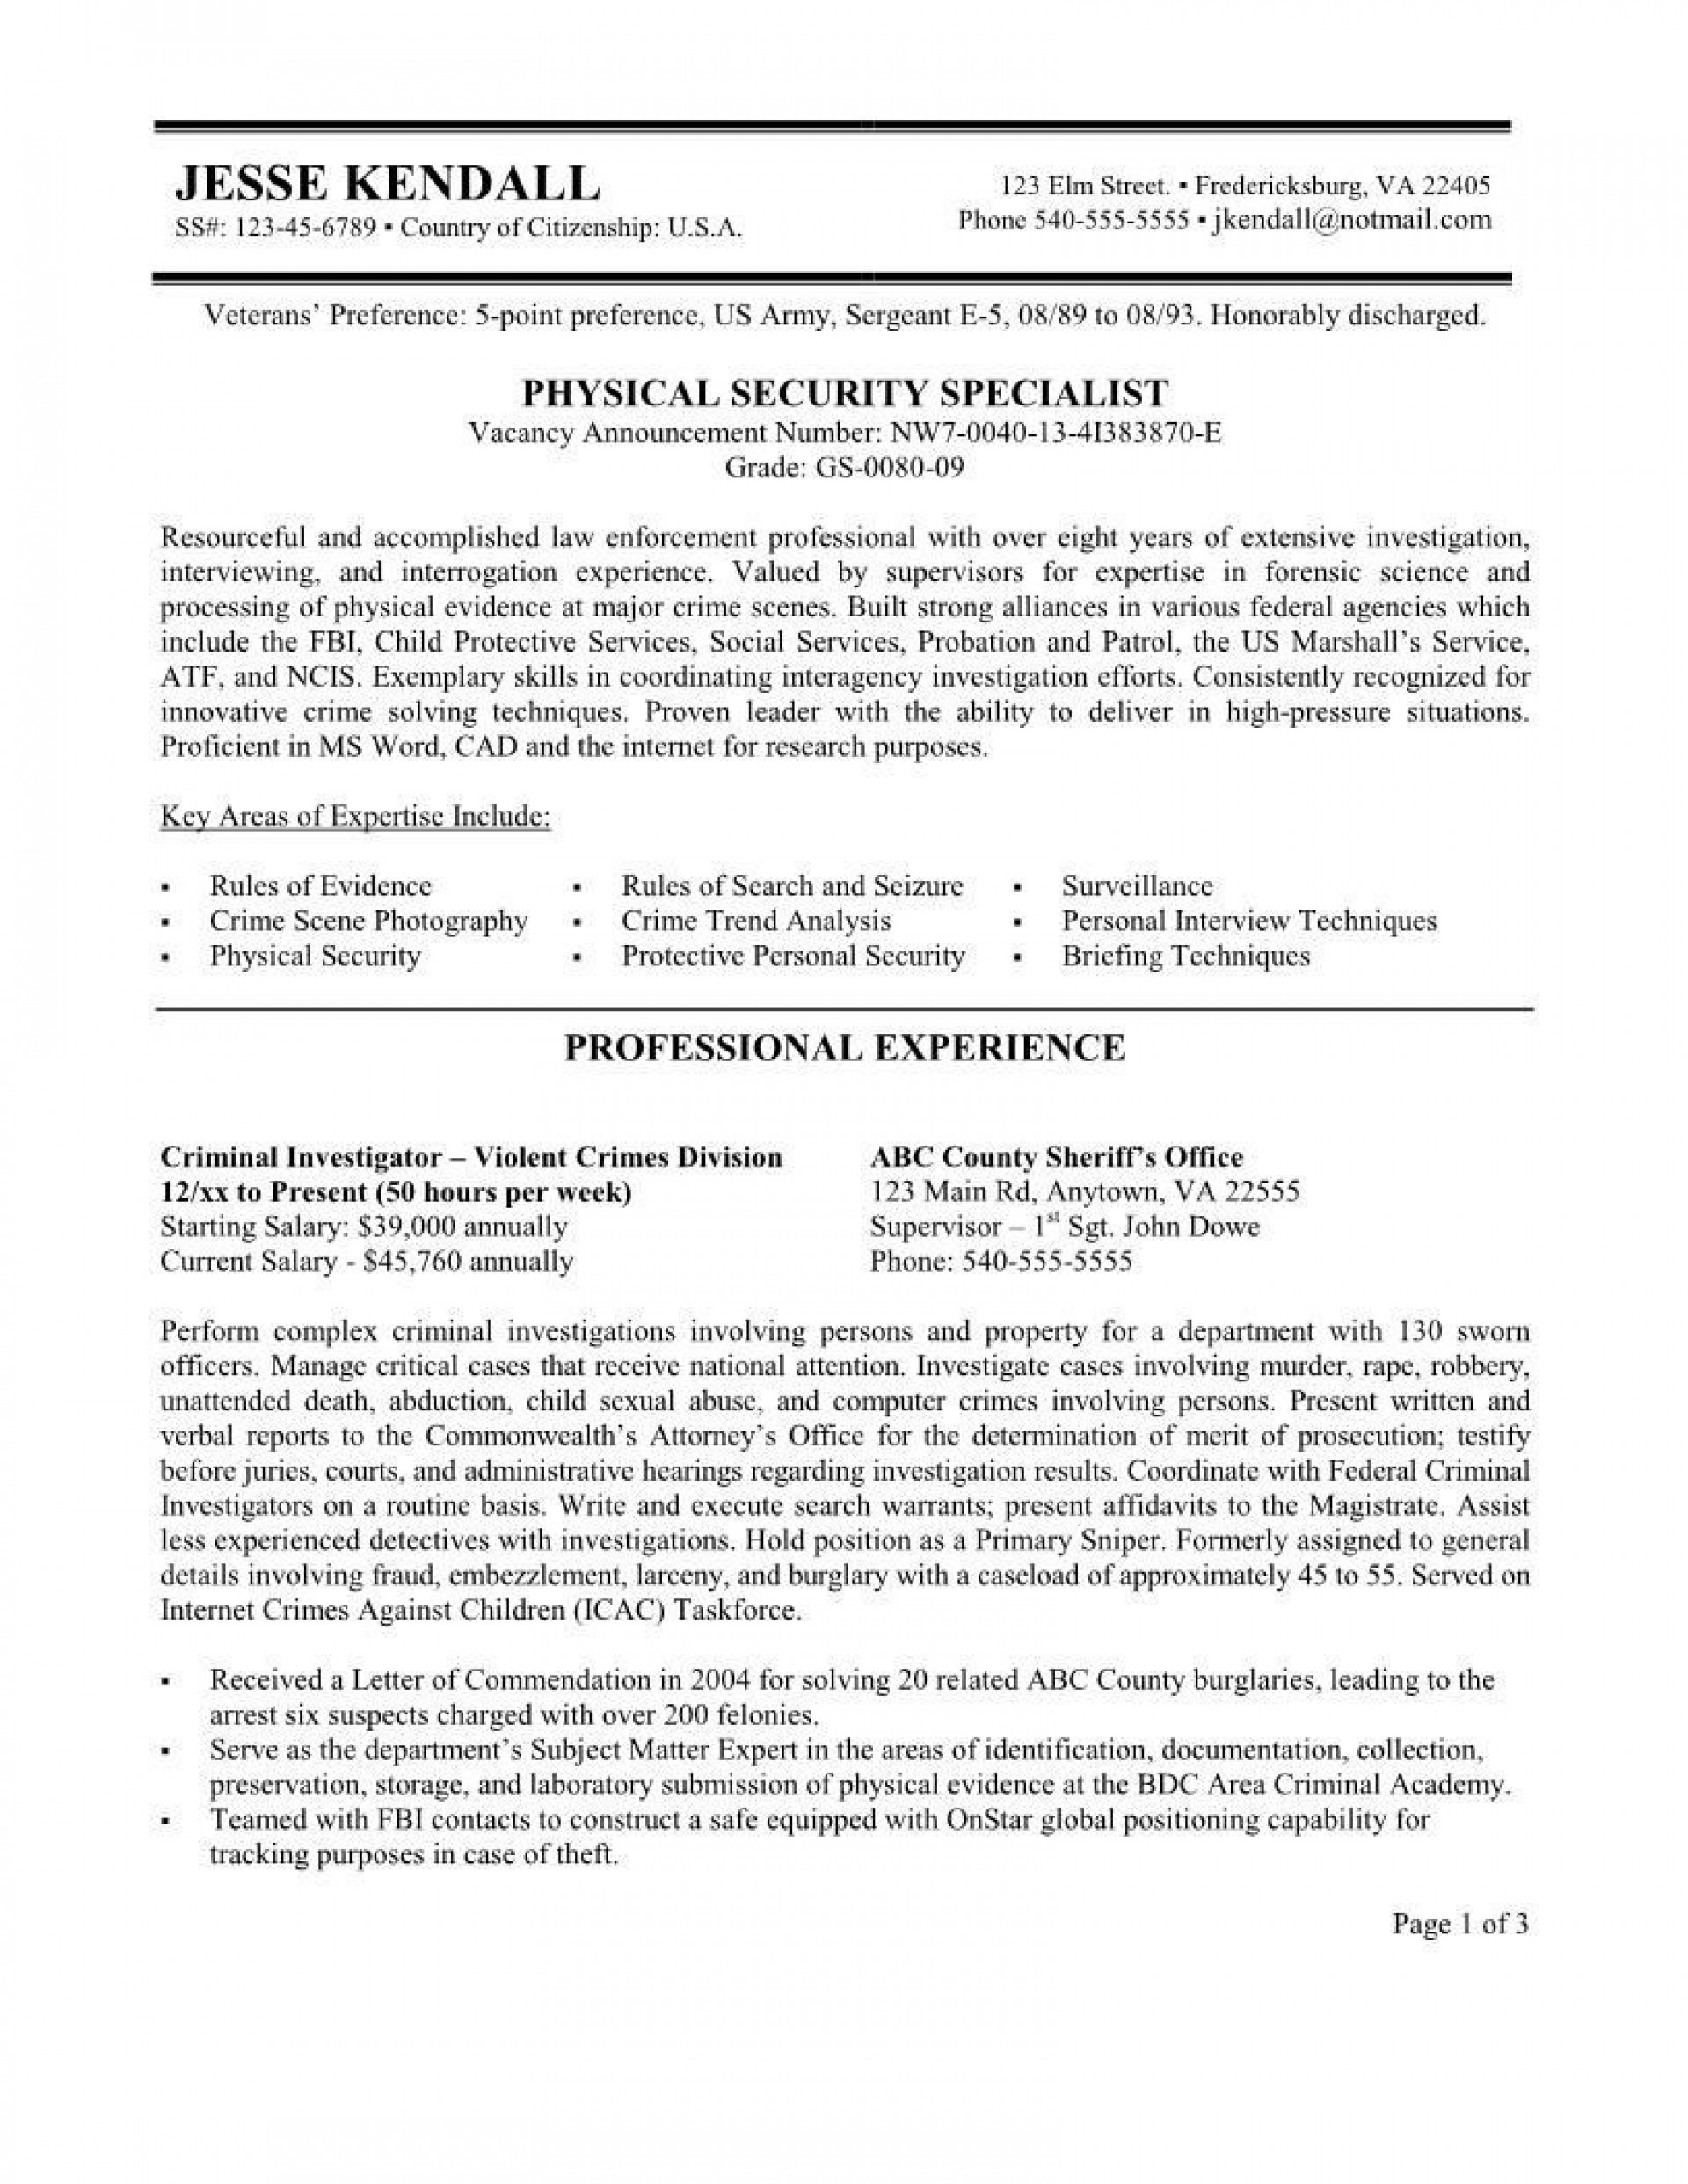 federal resume template word addictionary culverhouse sensational concept television Resume Culverhouse Resume Template